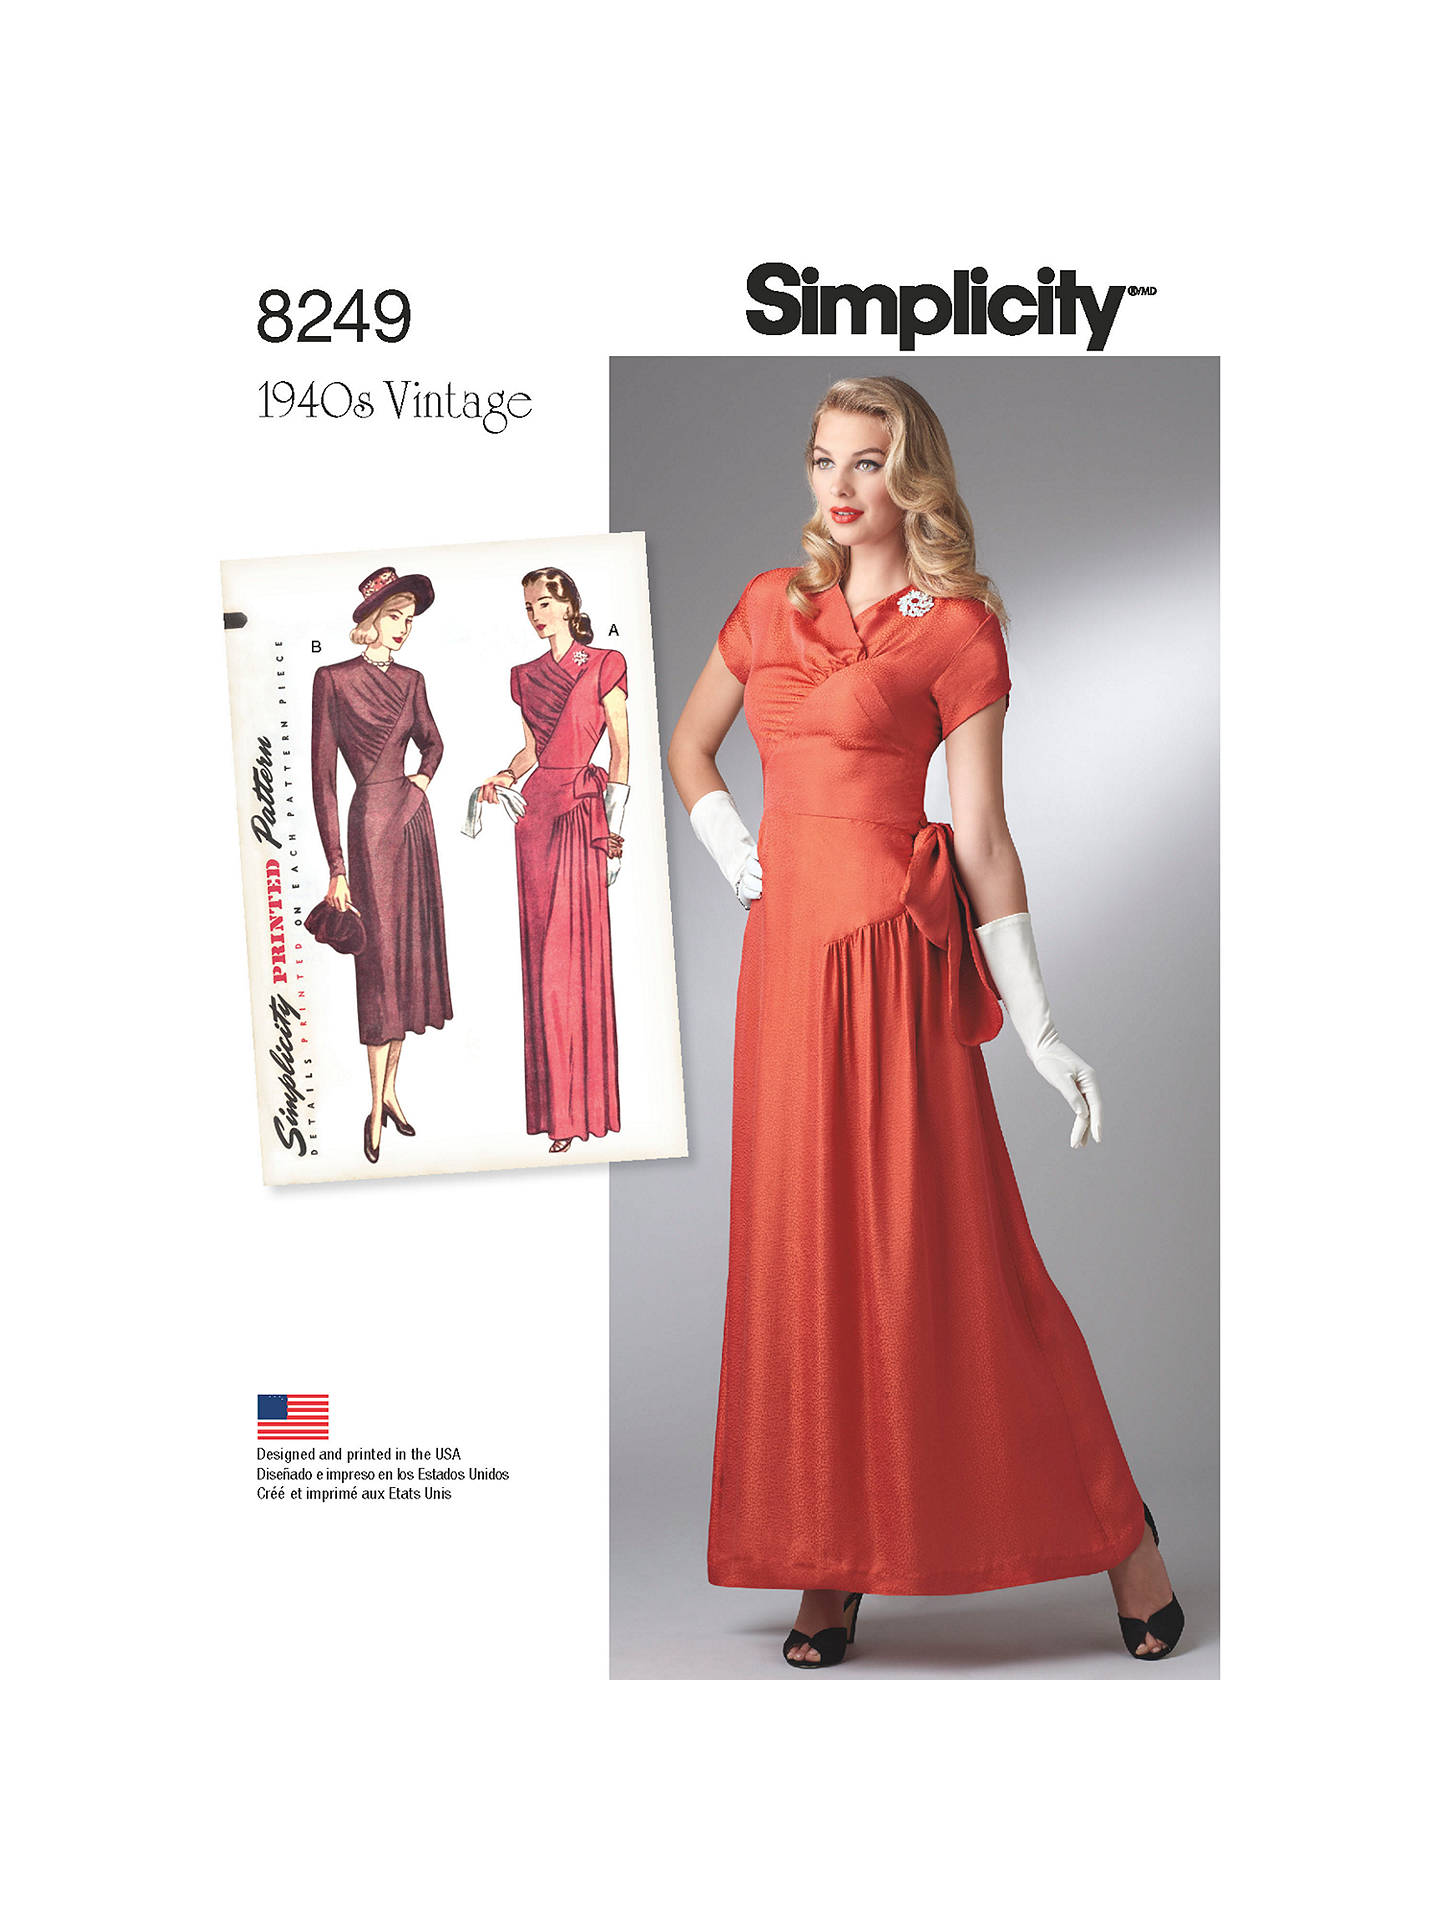 c7473291ca6 Buy Simplicity Cynthia Rowley Women's Outfits Sewing Patterns, 1314, H5  Online at johnlewis.